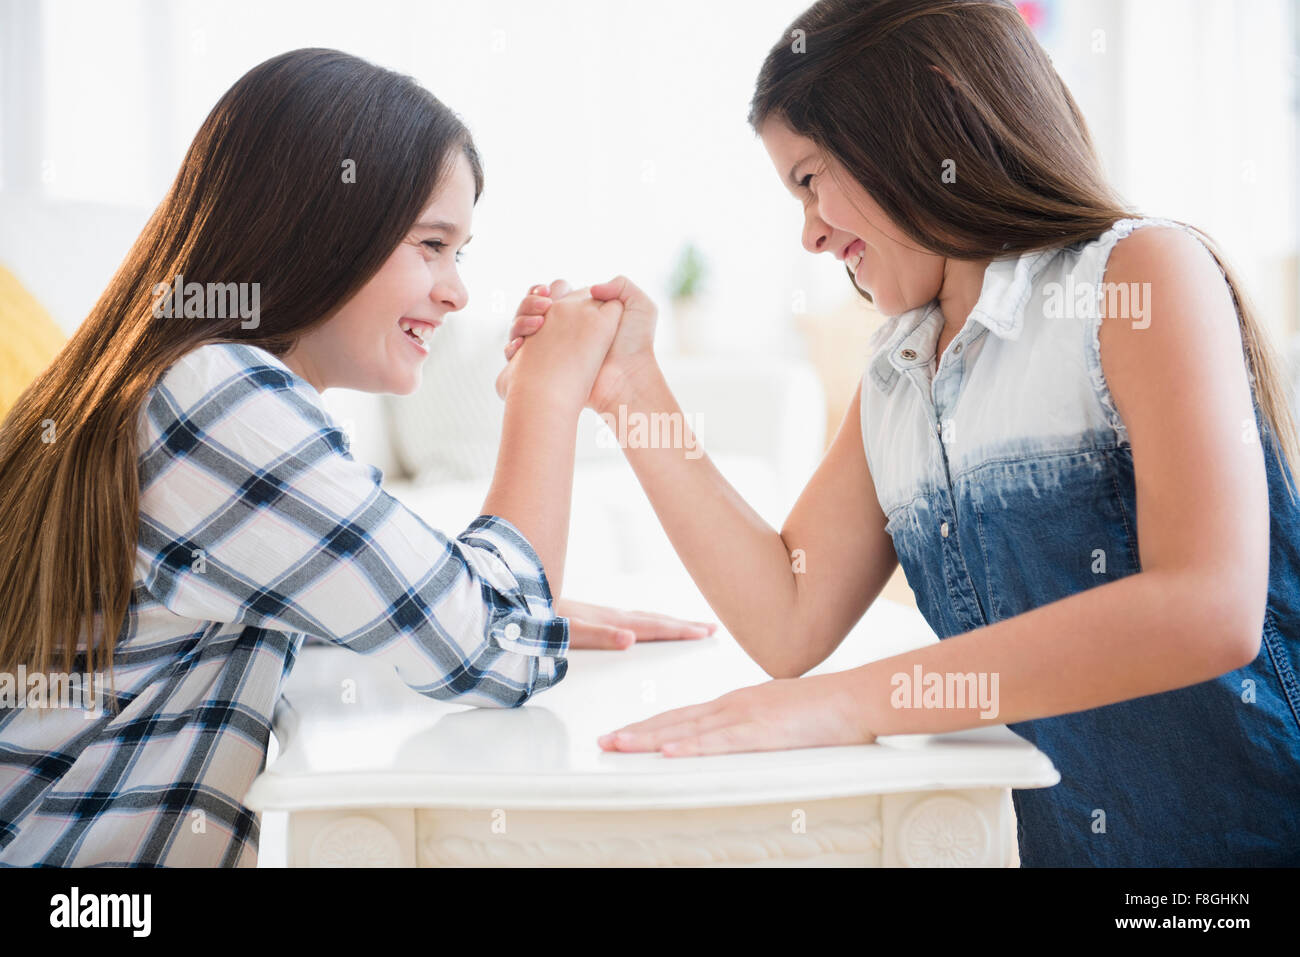 Caucasian twin sisters arm wrestling Stock Photo